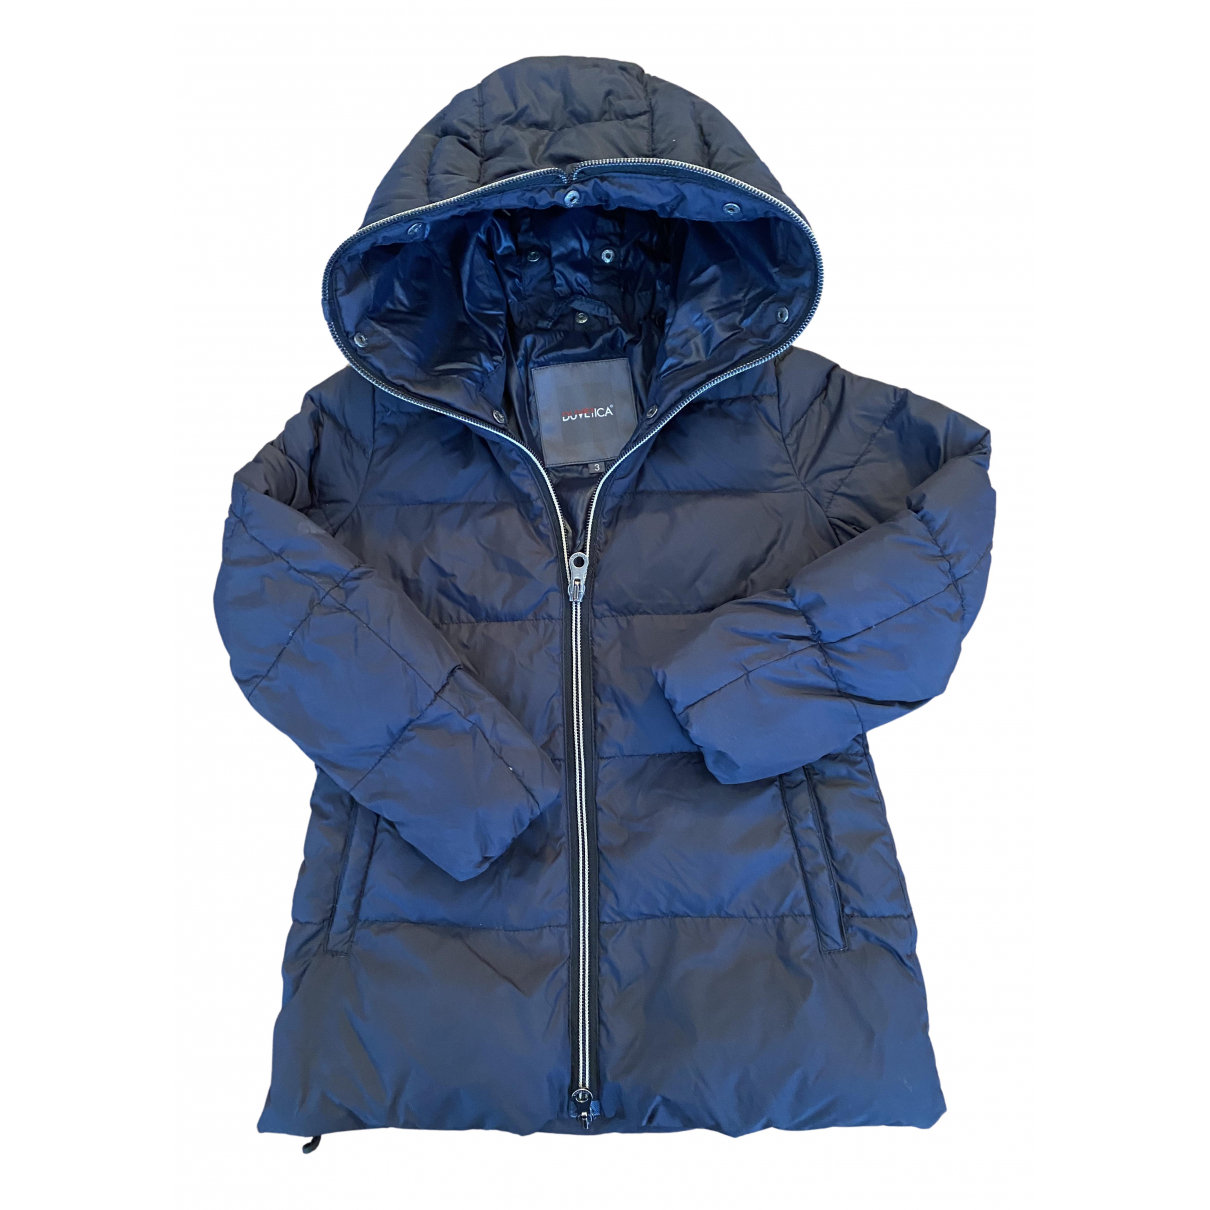 Duvetica N Blue jacket & coat for Kids 3 years - up to 98cm FR